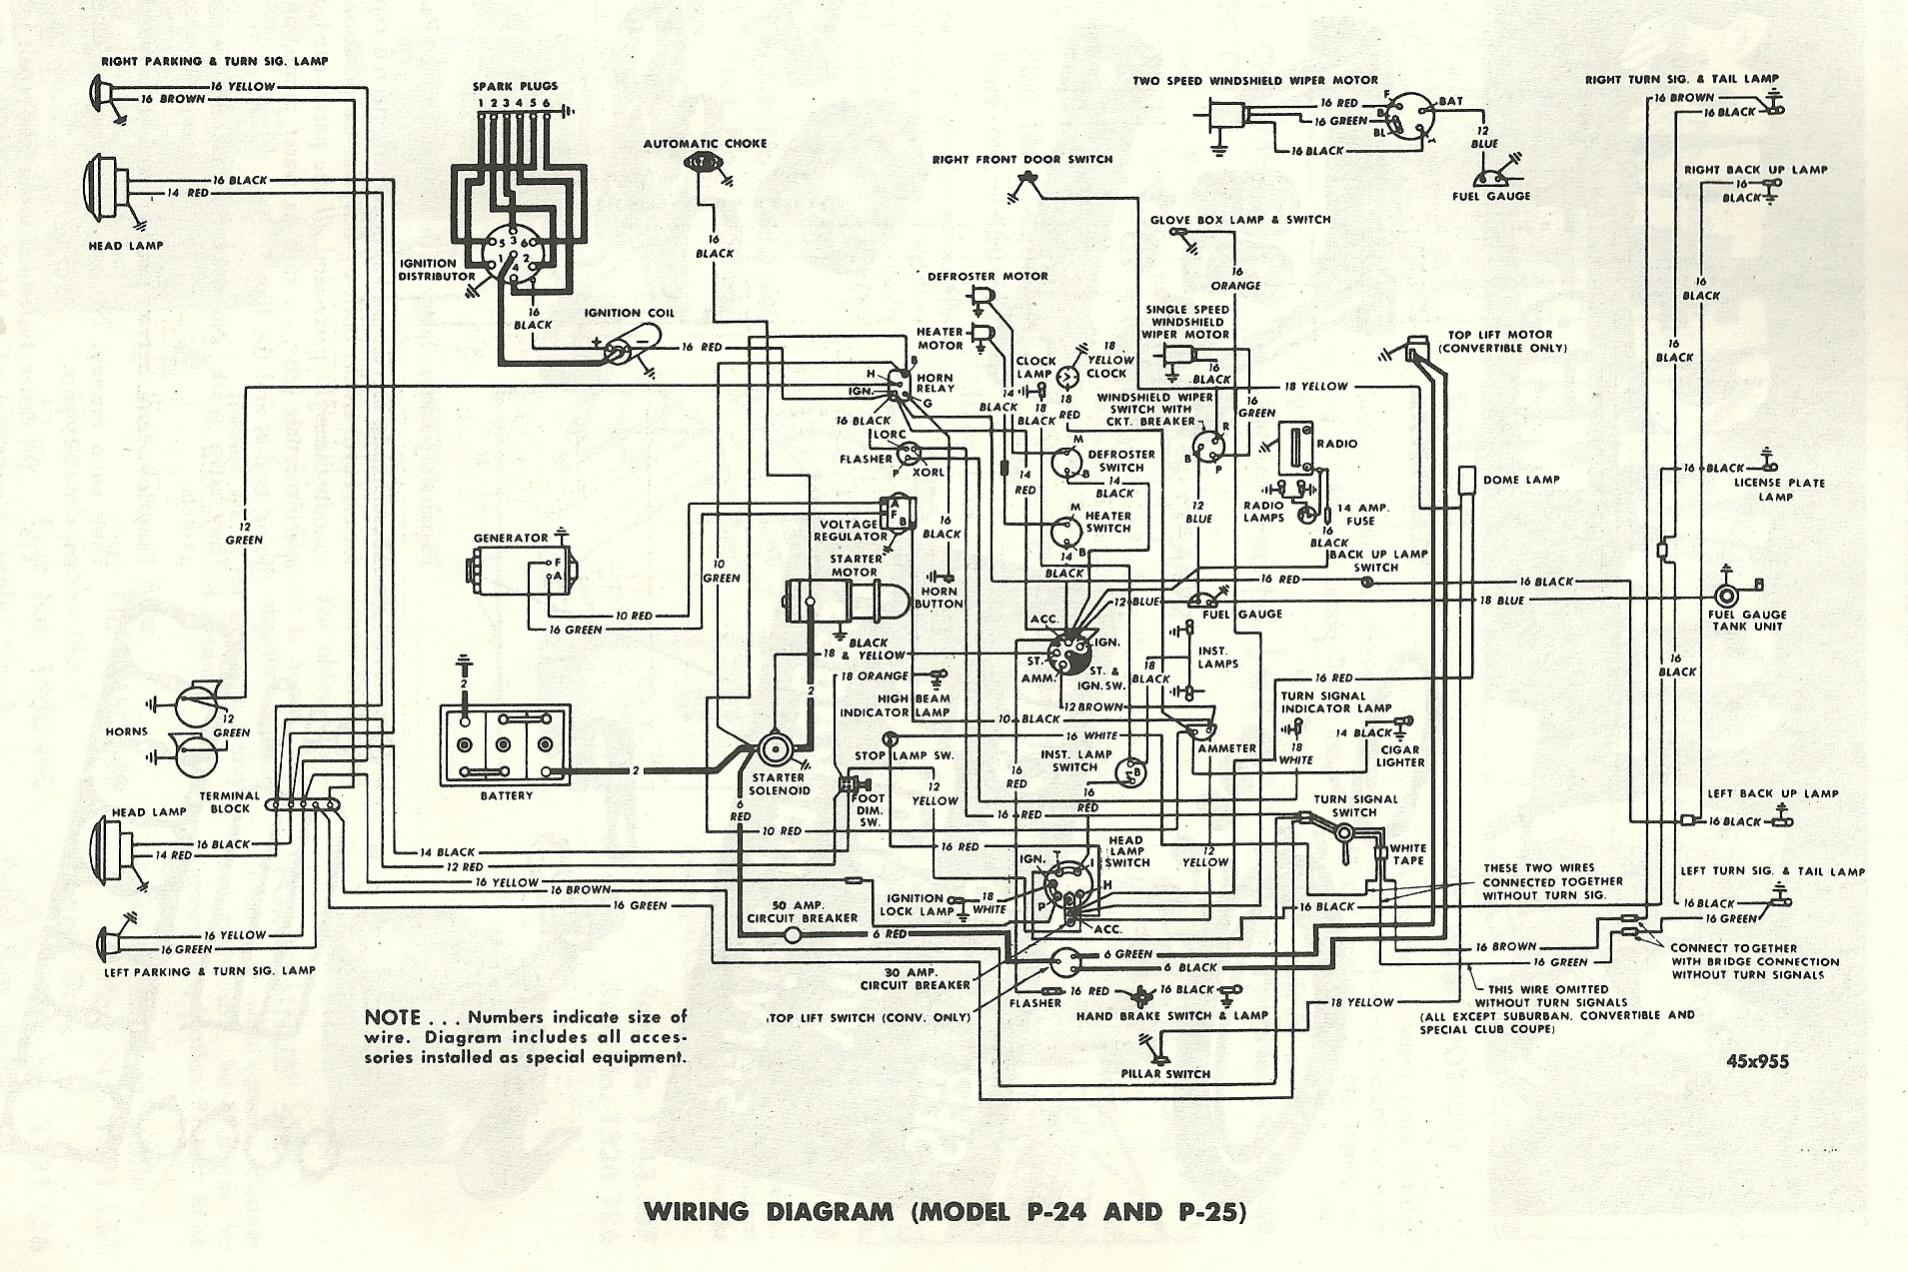 1951 chevy wiring 1951 chevy ignition switch wiring diagram schematic 1951 chevy ignition switch wiring diagram schematic ... #11